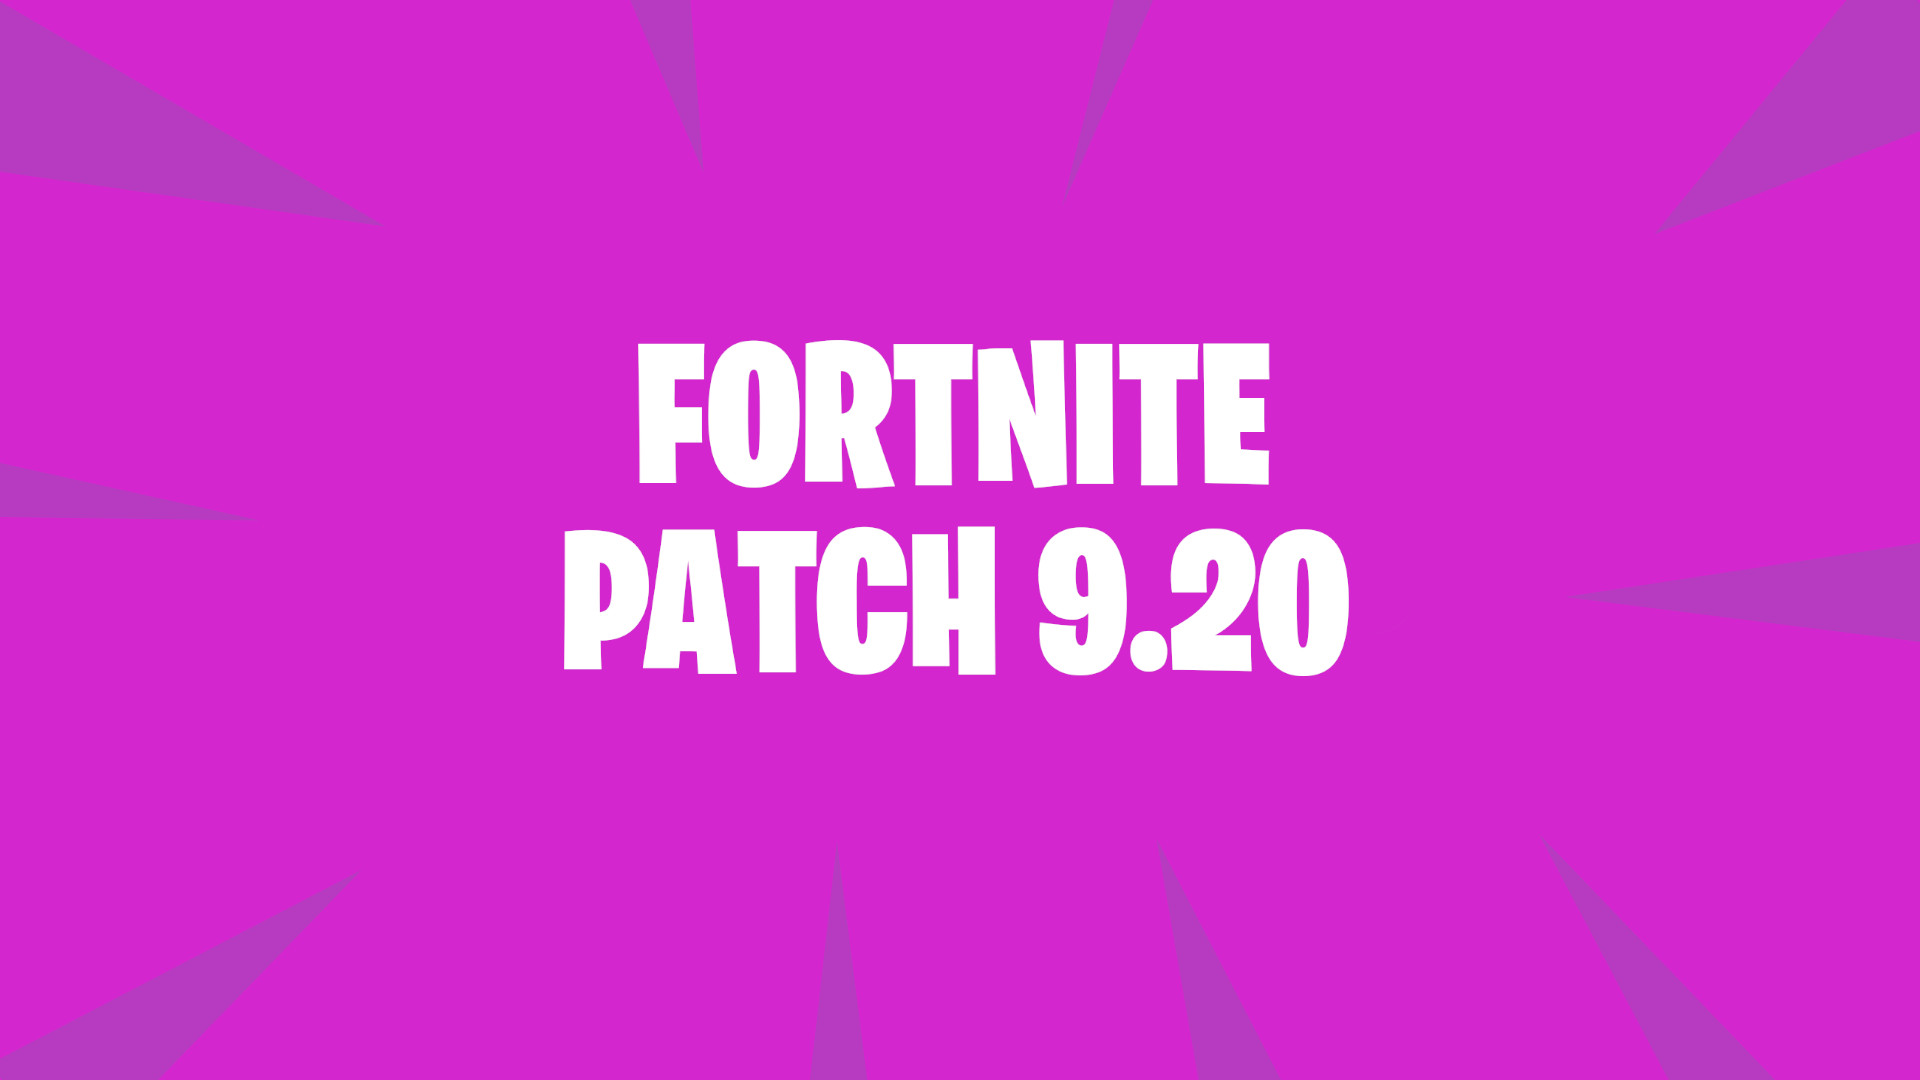 Photo of Fortnite patch 9.20 downtime starts tomorrow at 4 AM ET